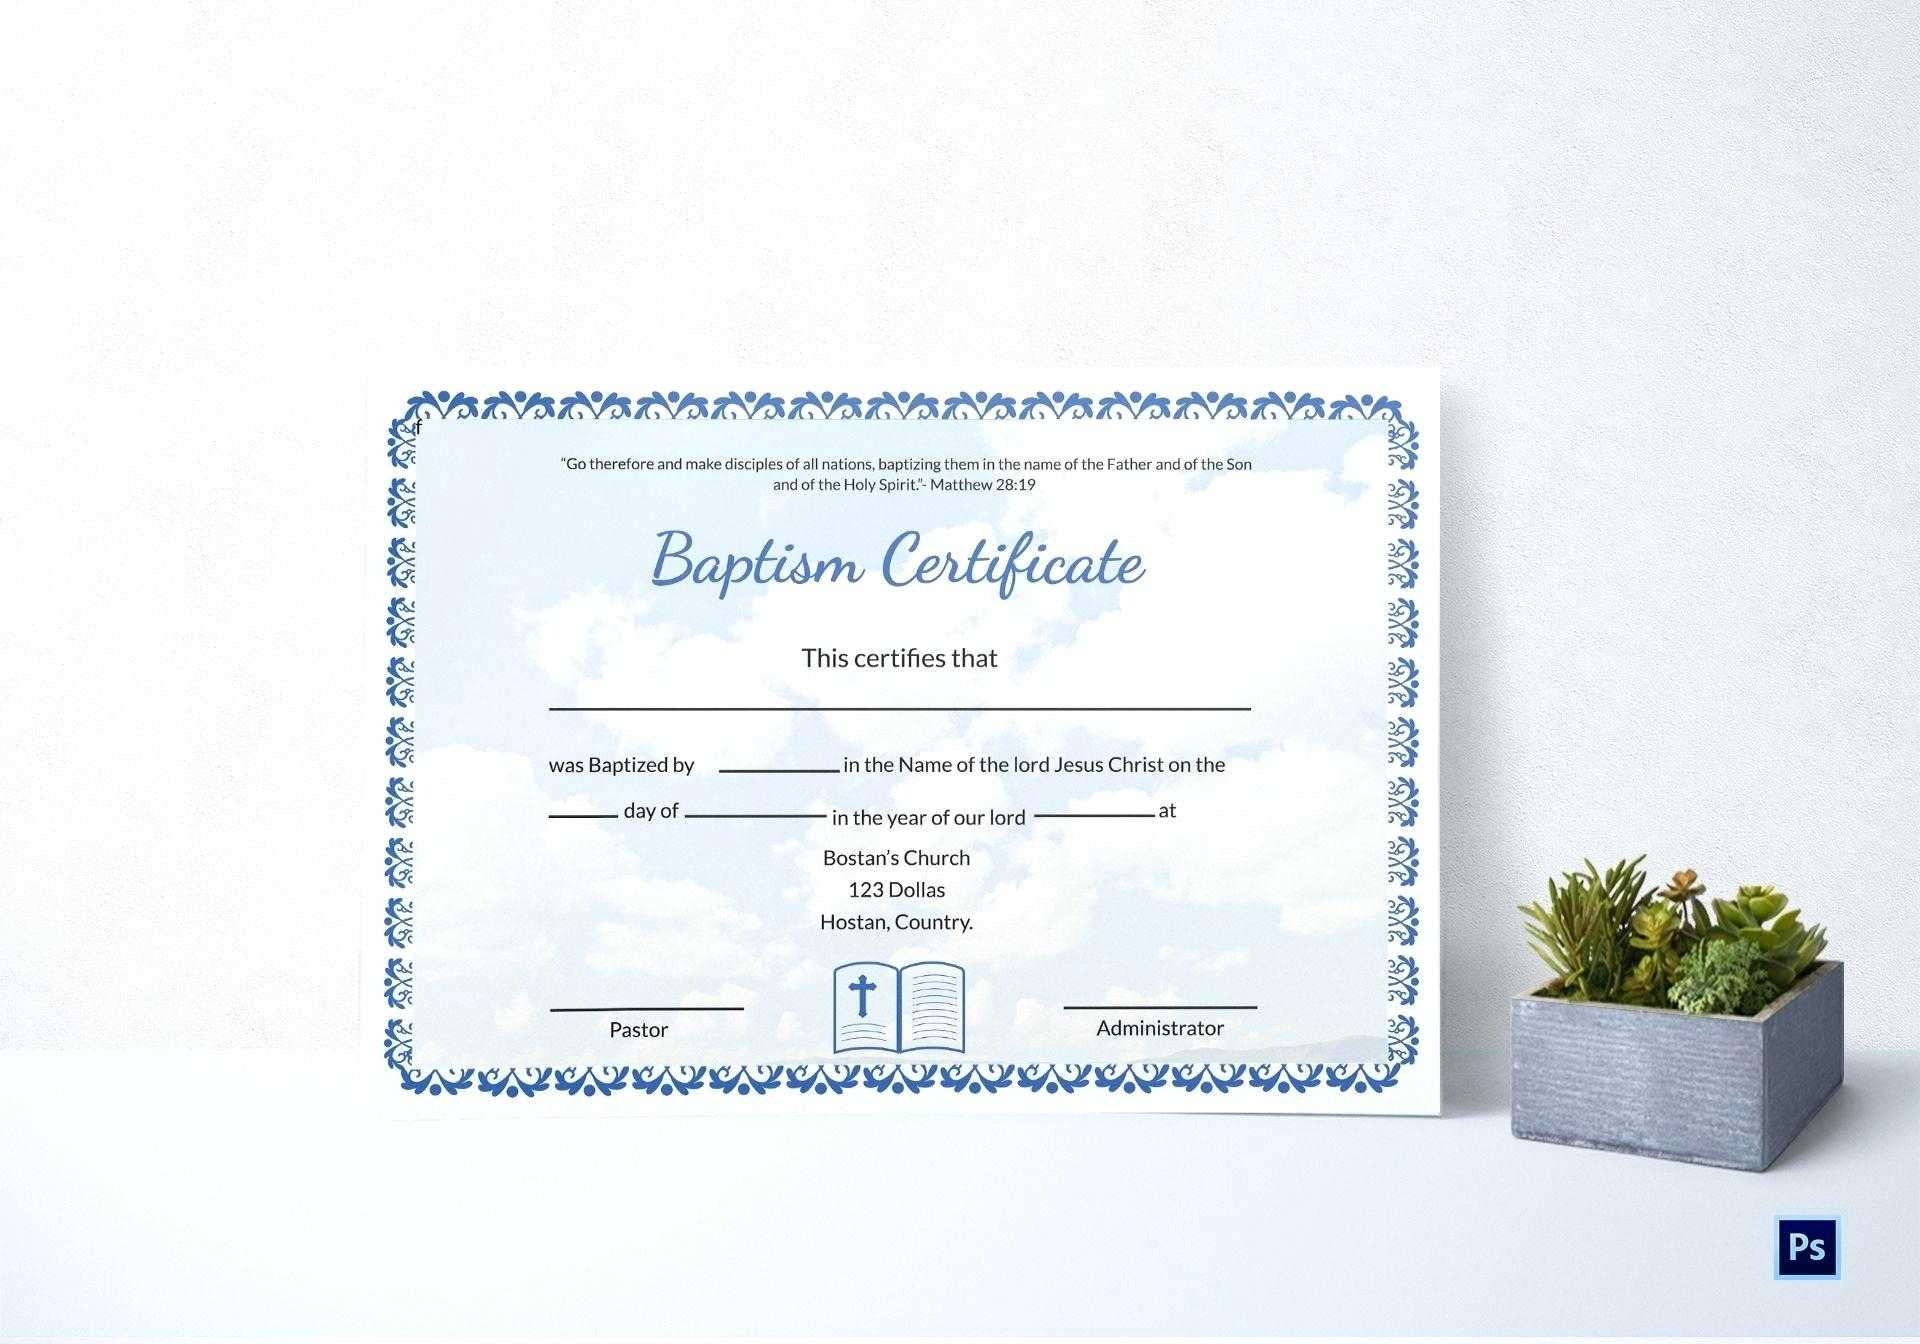 Baptism Certificate Template Word – Heartwork With Baptism Certificate Template Word